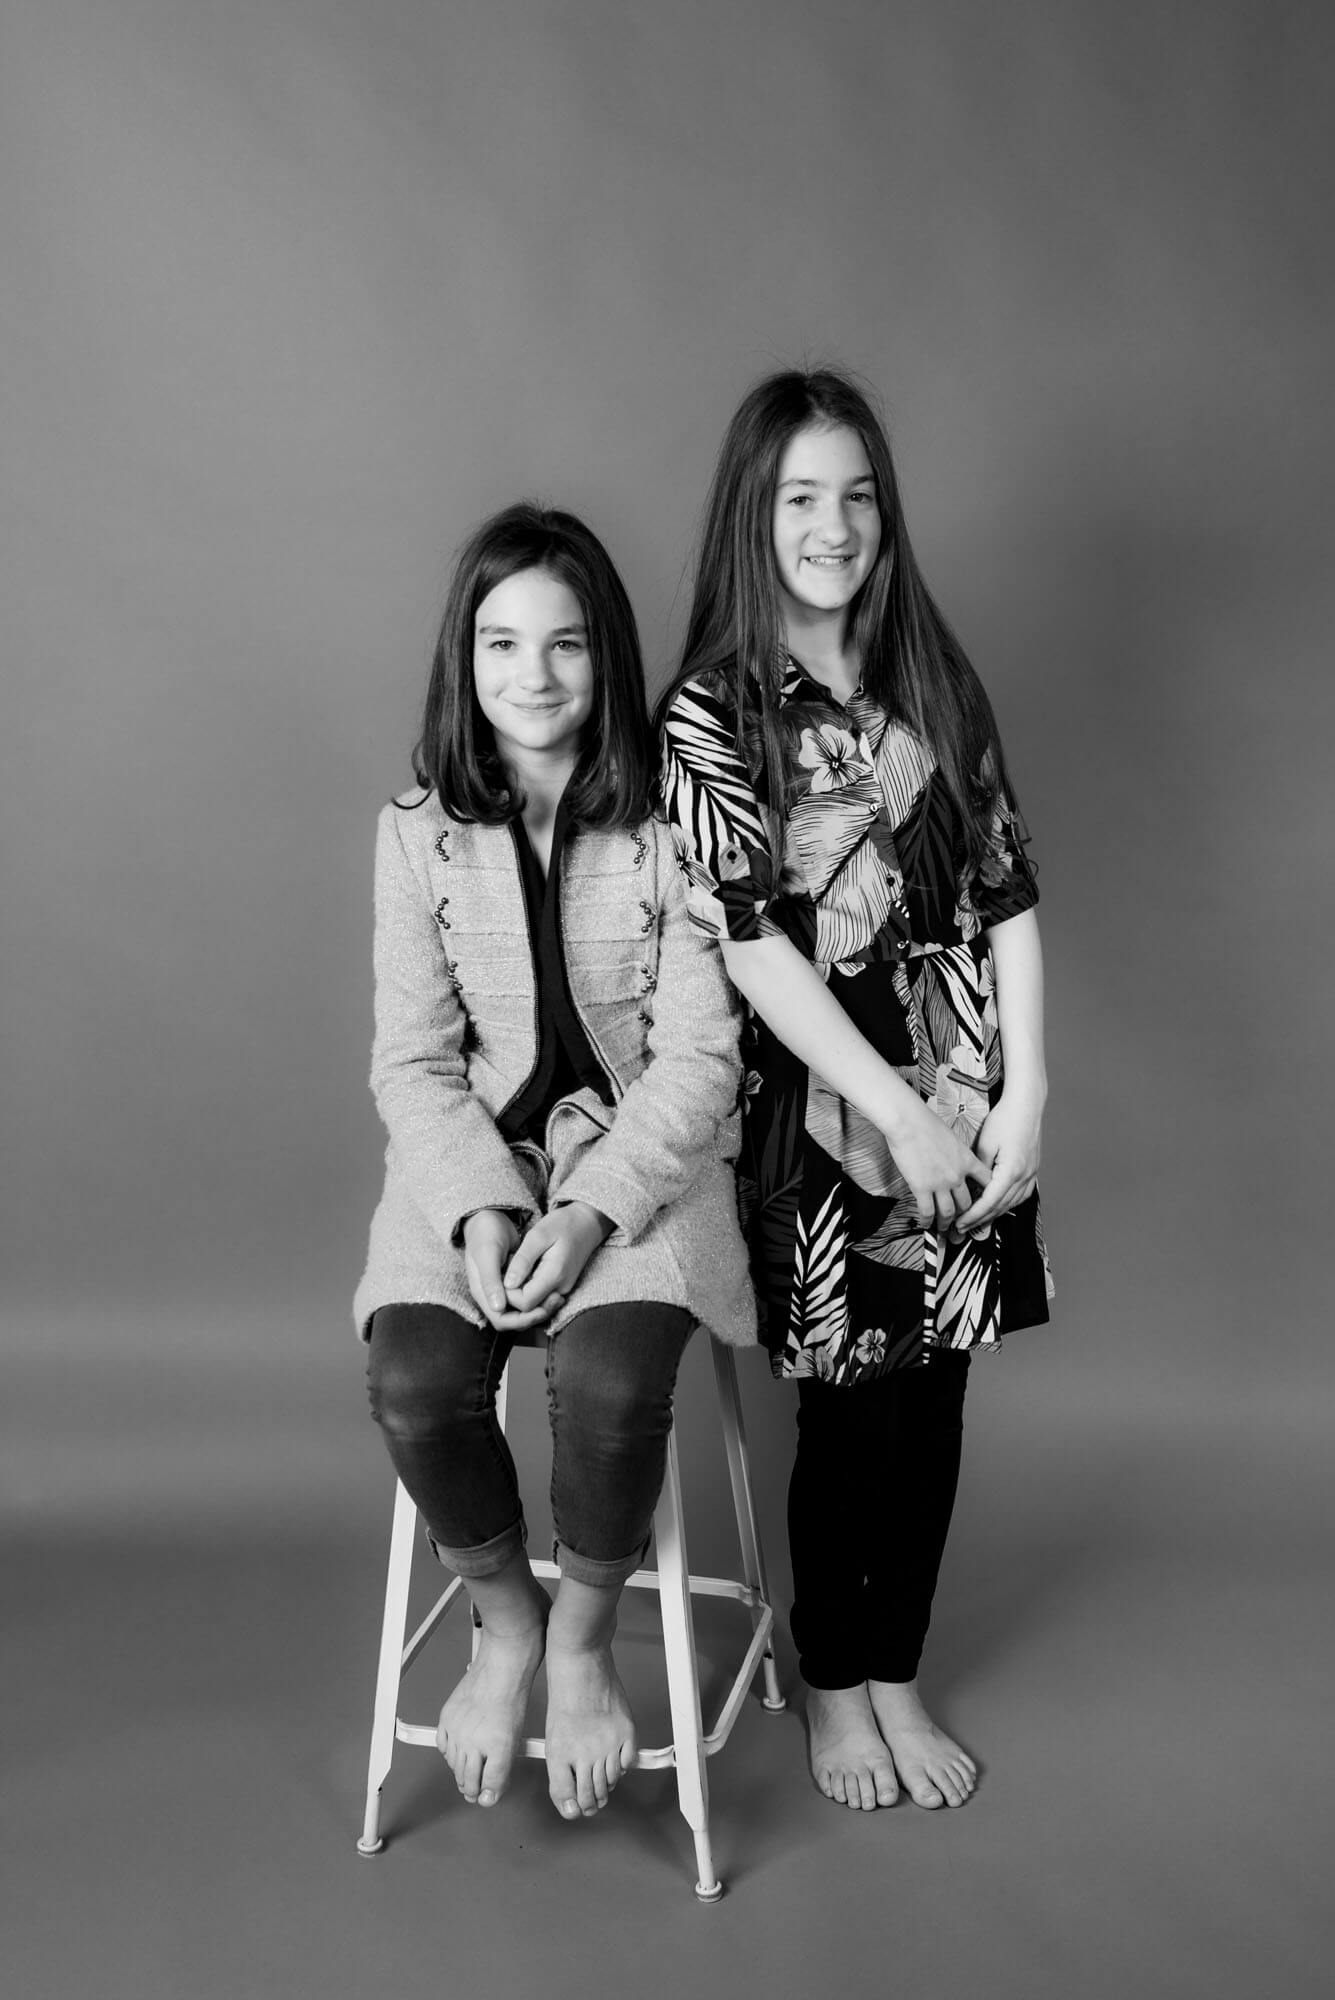 portrait of 2 girls in a studio